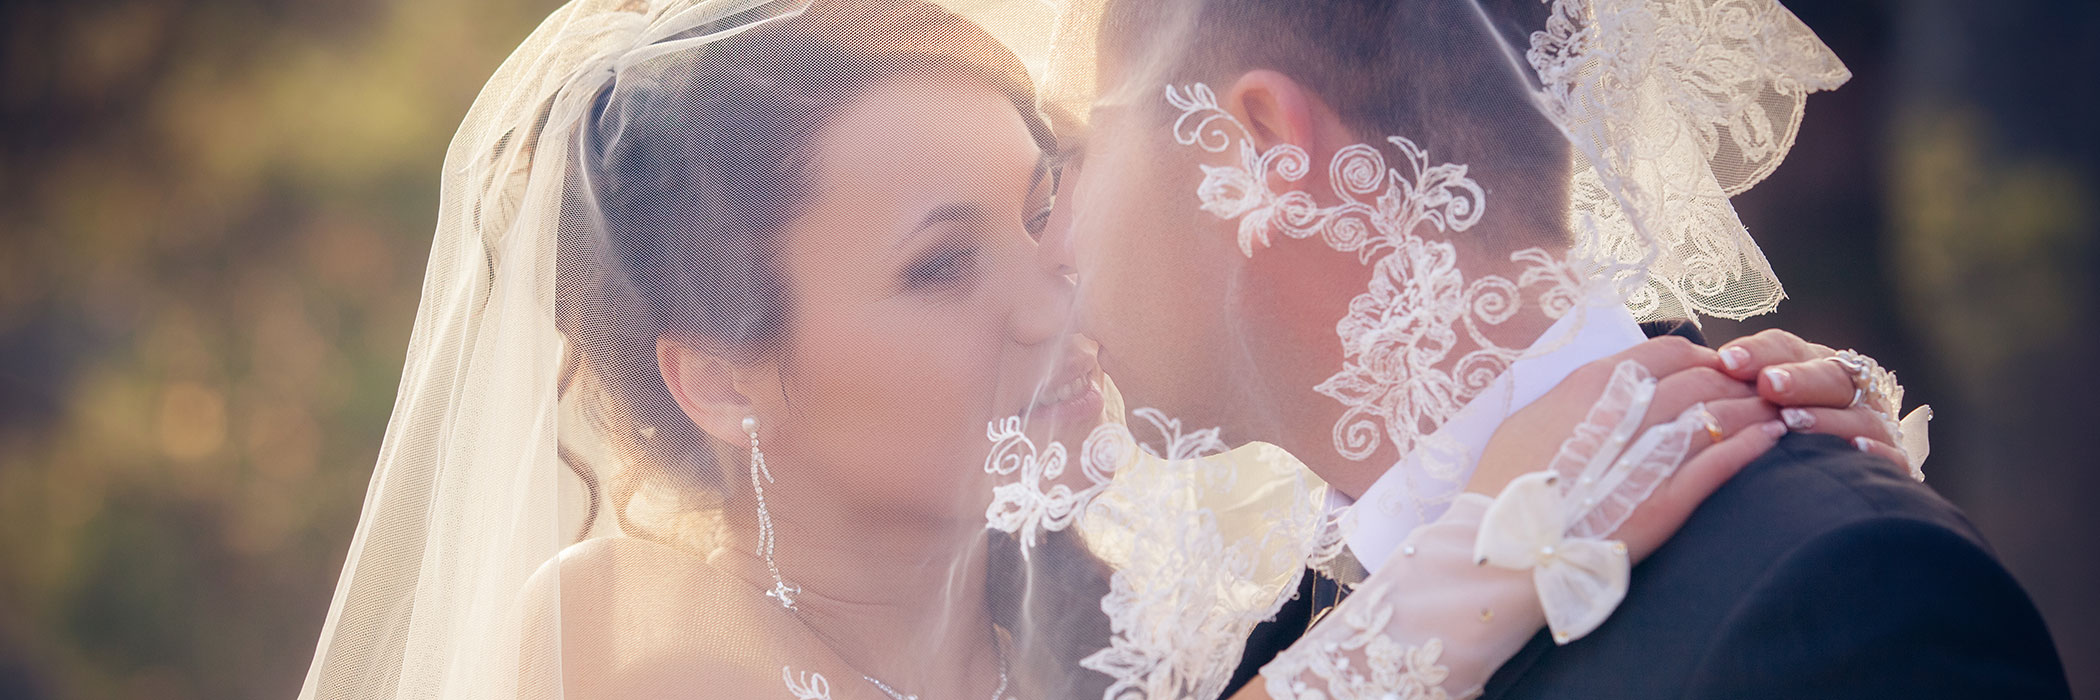 New Zealand bride and groom picture.